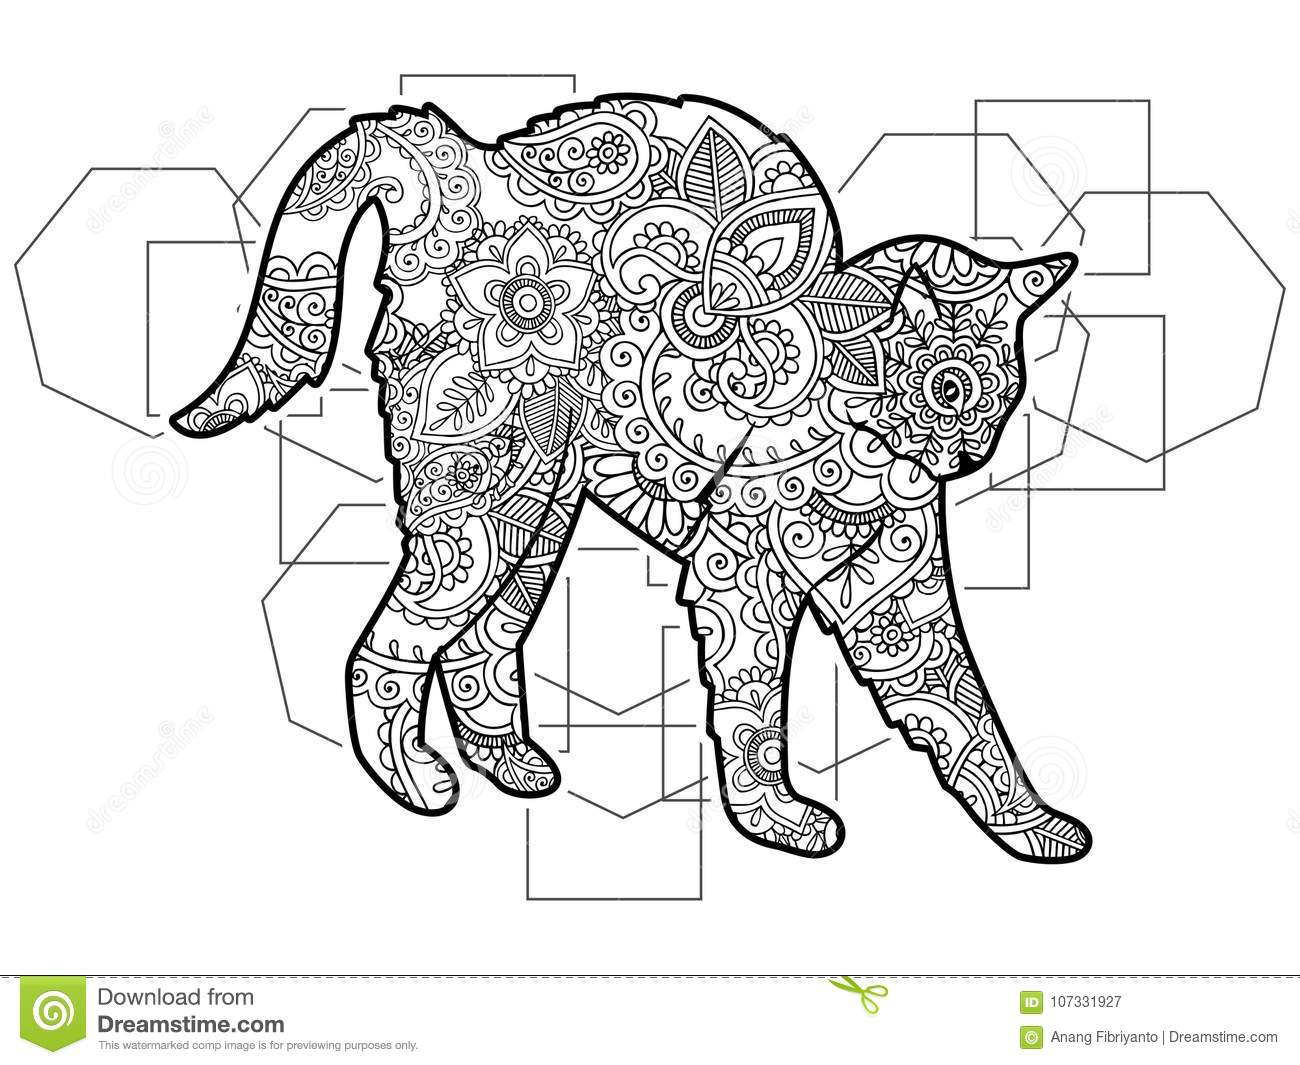 black white cat drawn doodle animal paisley adult stress release coloring page zentangle black white hand drawn doodle